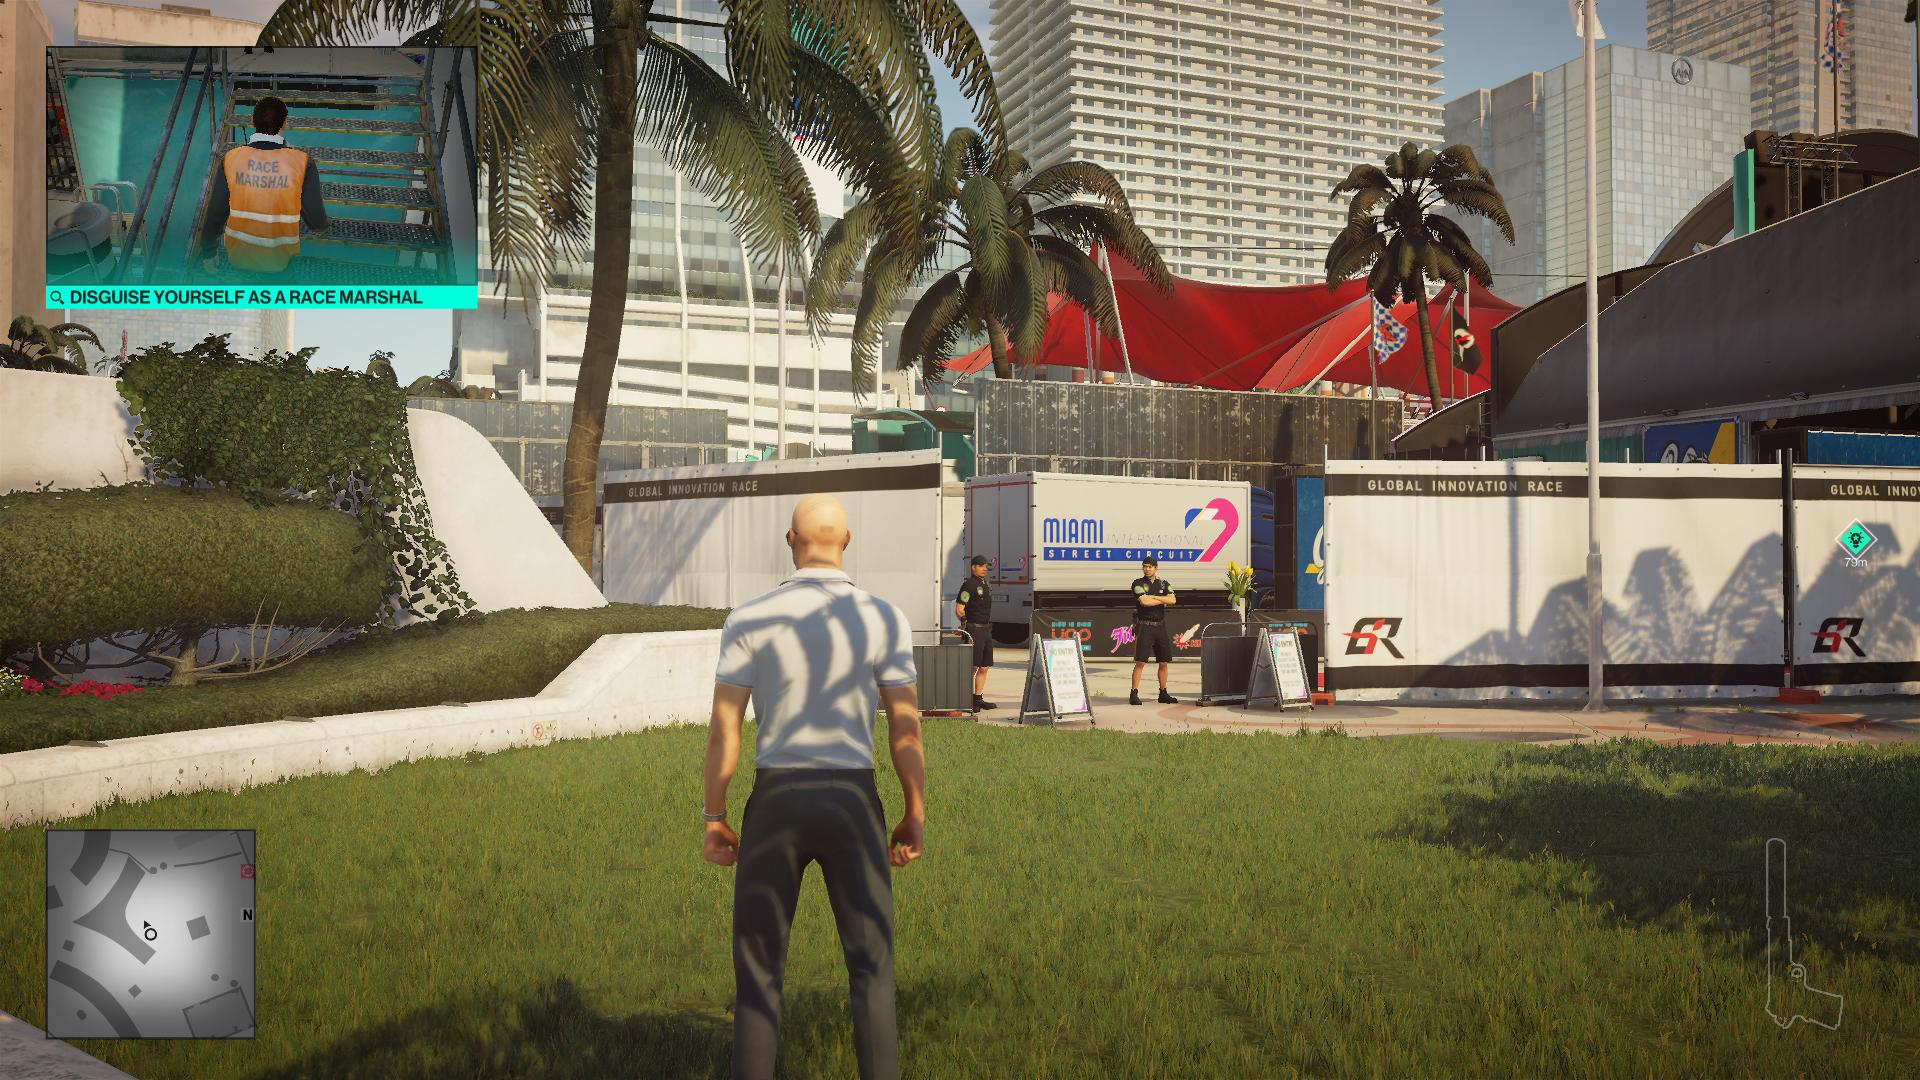 Agent 47 standing on the grass like a naughty man. Two guards are blocking the way to a van.